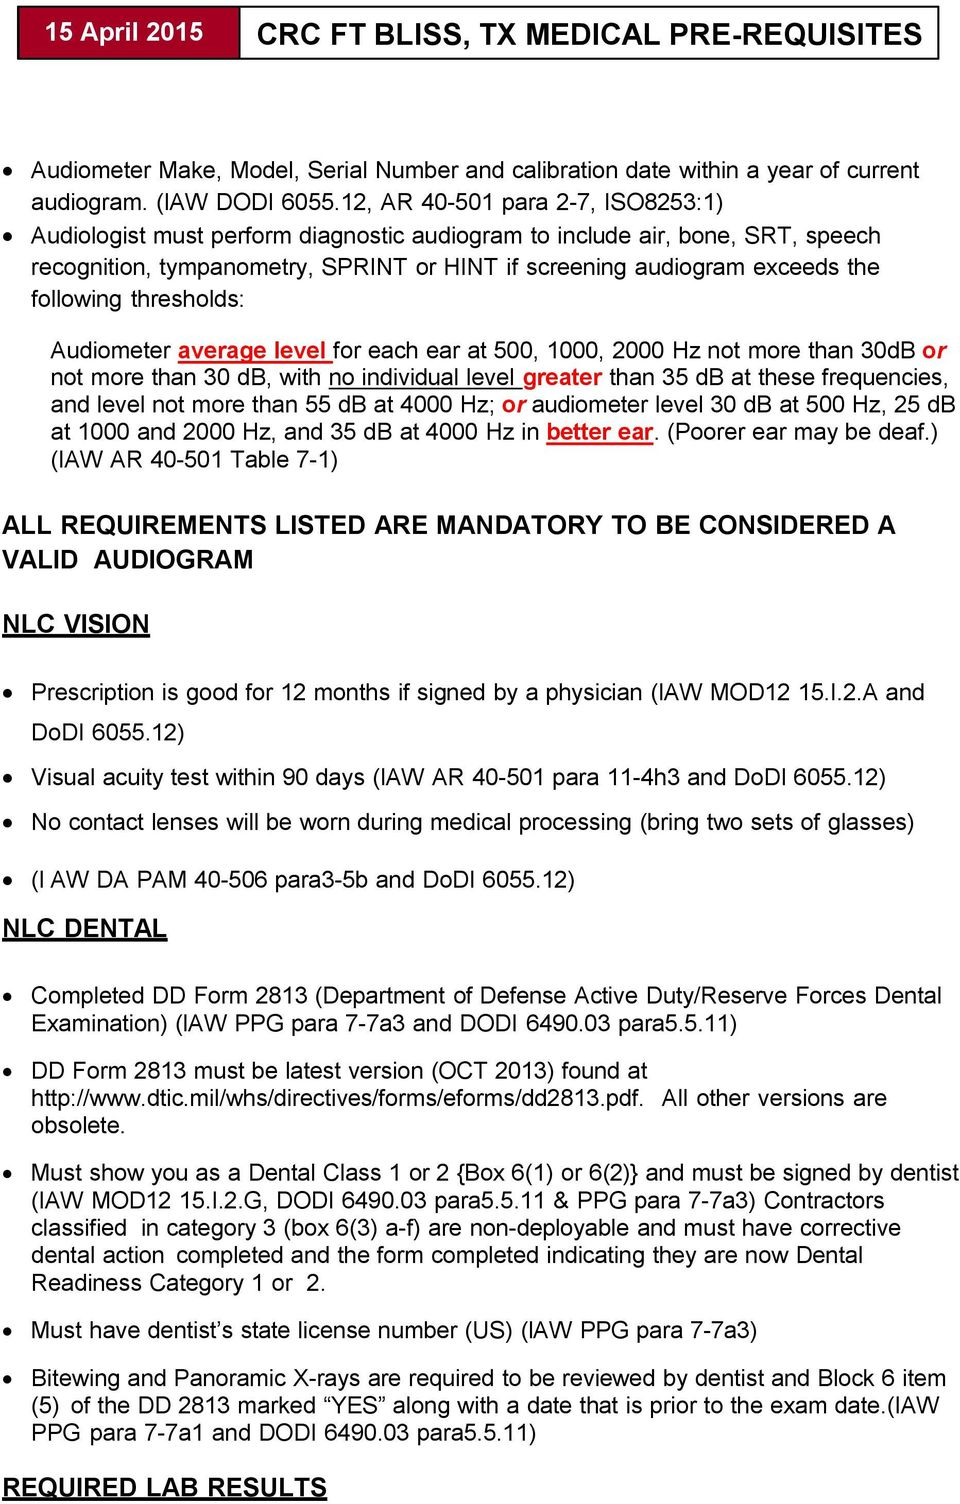 Crc Ft Bliss Tx Medical Pre Requisites Pdf